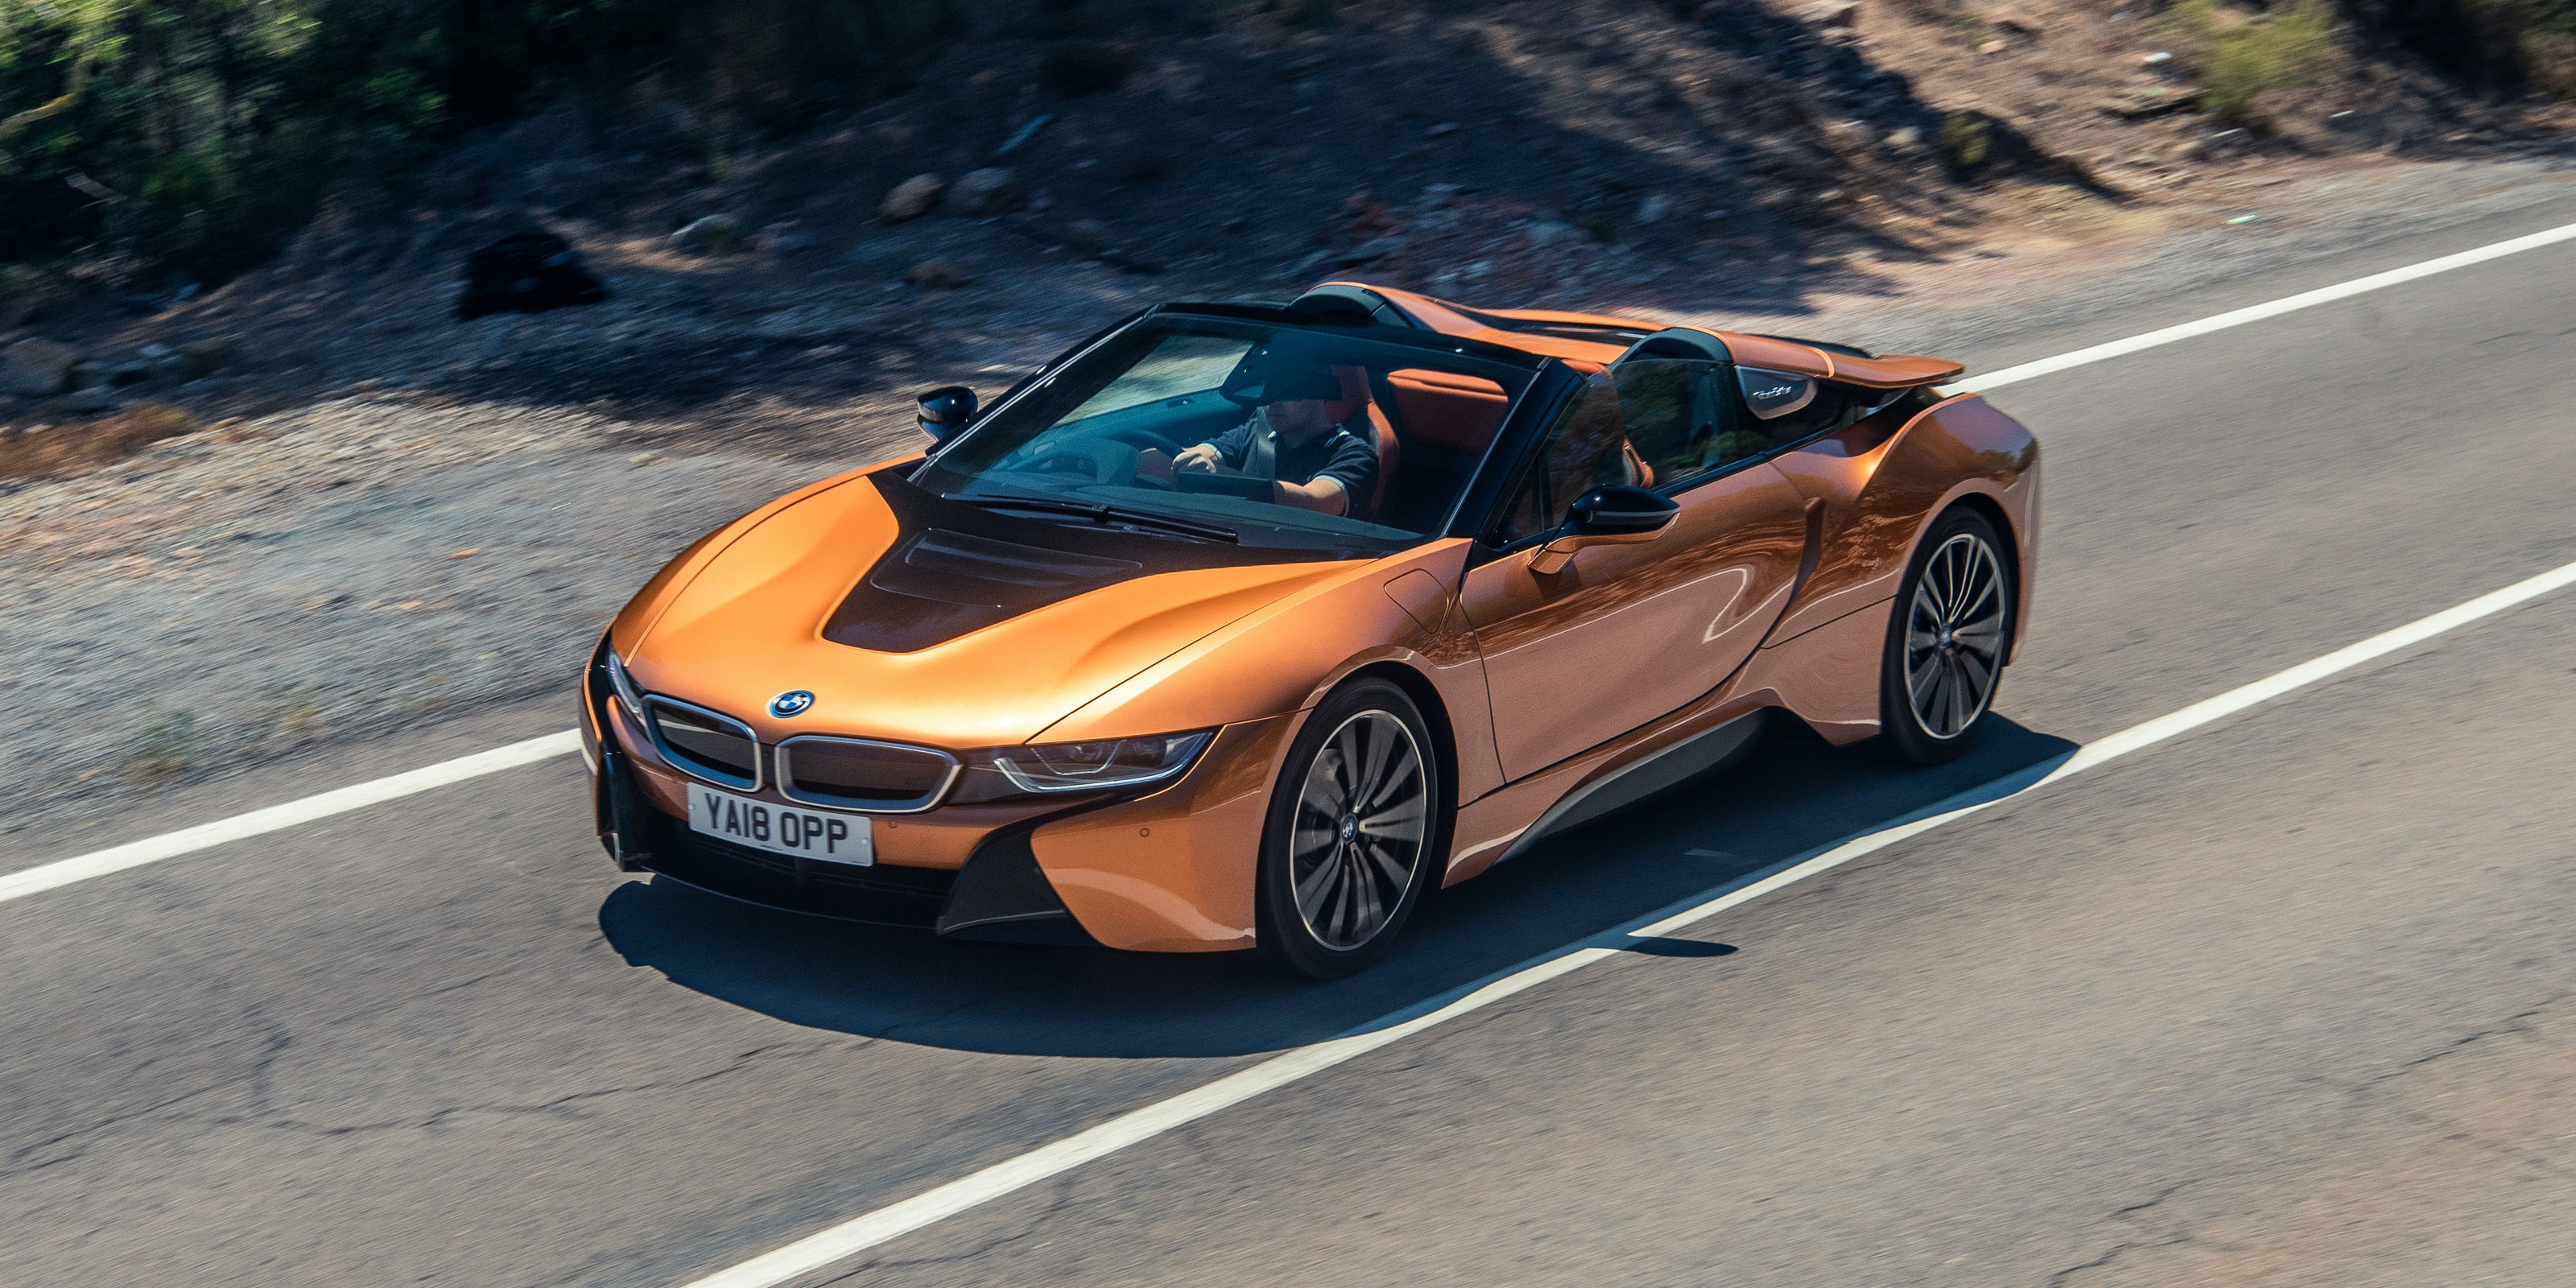 The i8 Roadster is one of the most futuristic-looking cars on sale